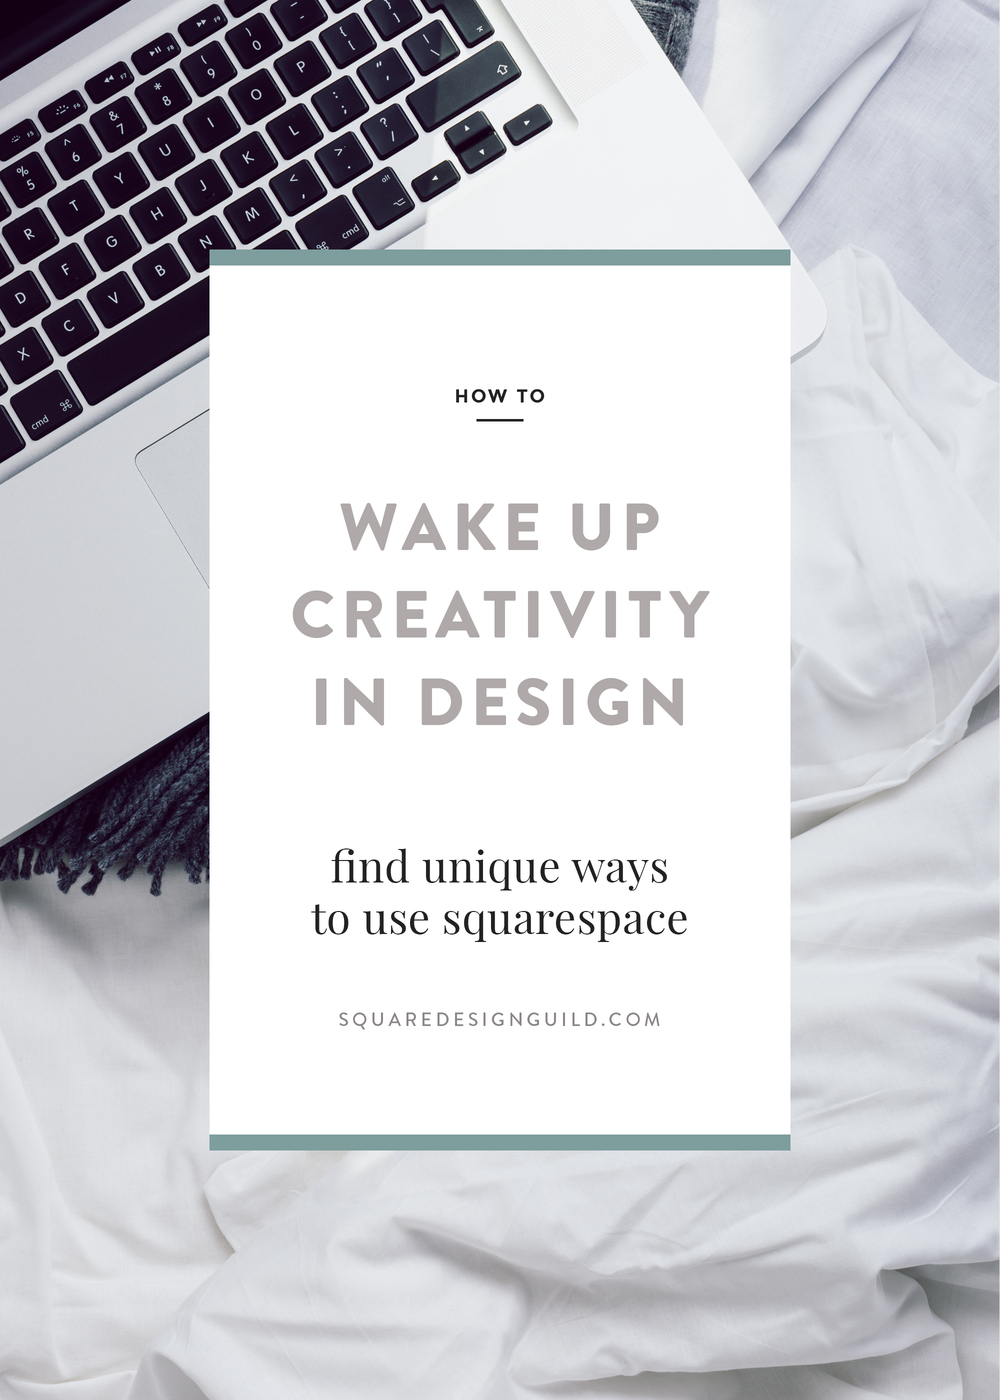 How To Wake Up Creativity in Design | Unique Ways to Use Squarespace | Squarespace Design Guild